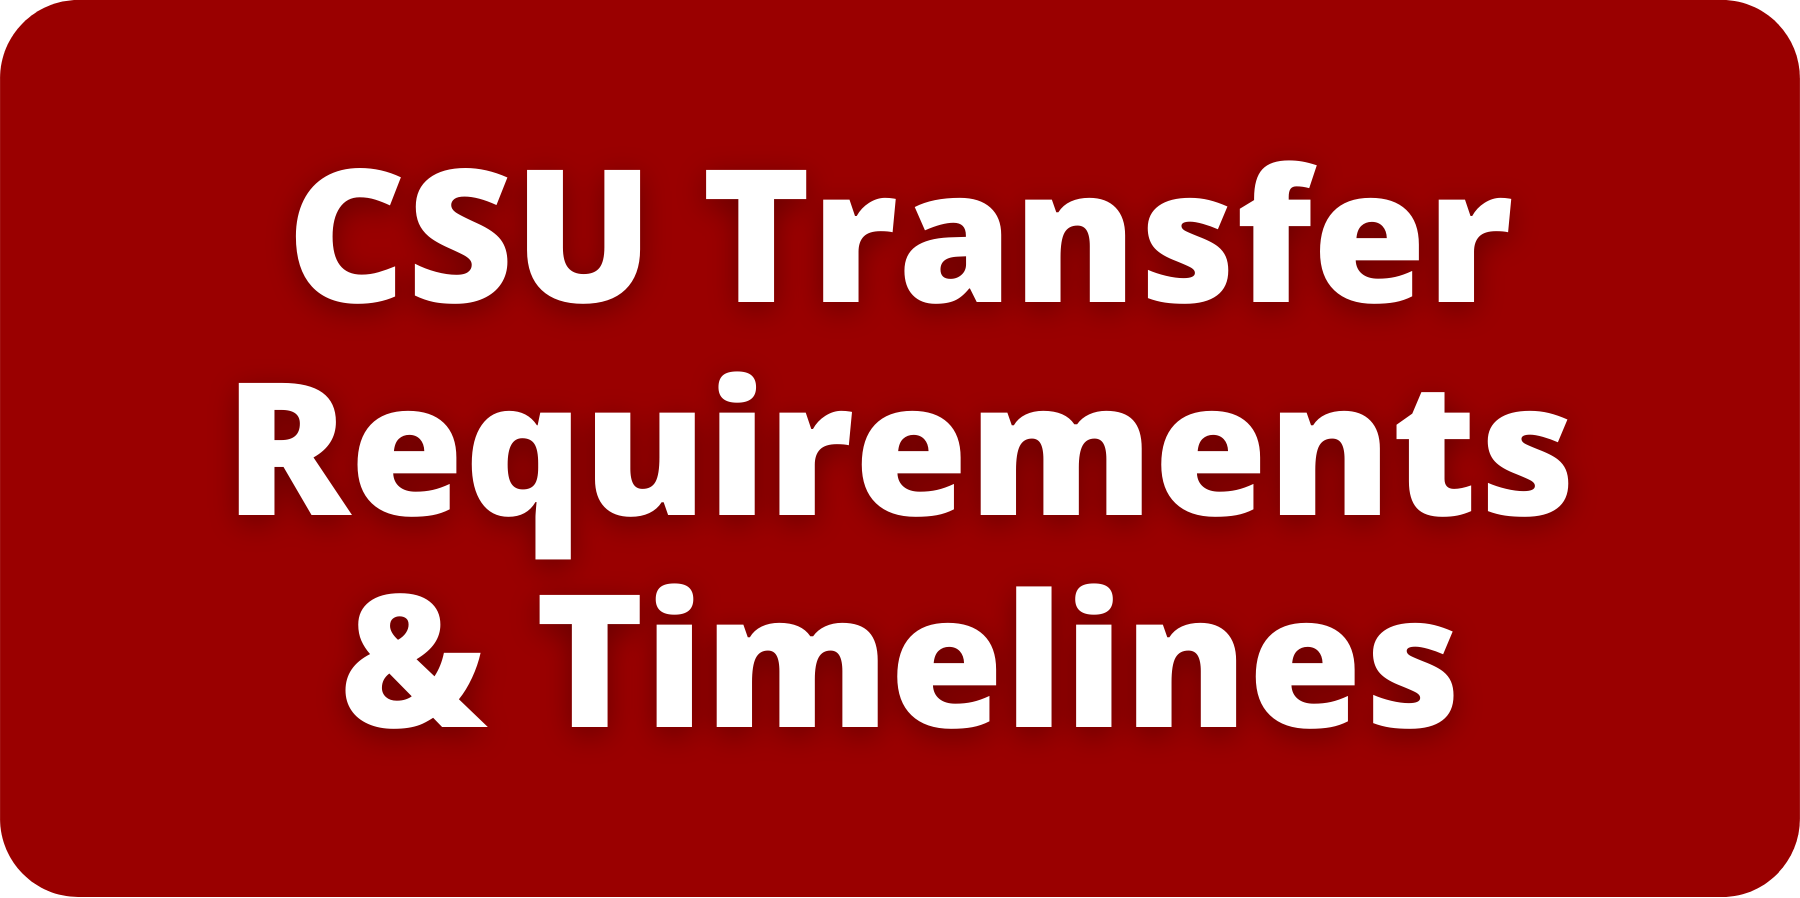 CSU Transfer Requirements & Timelines